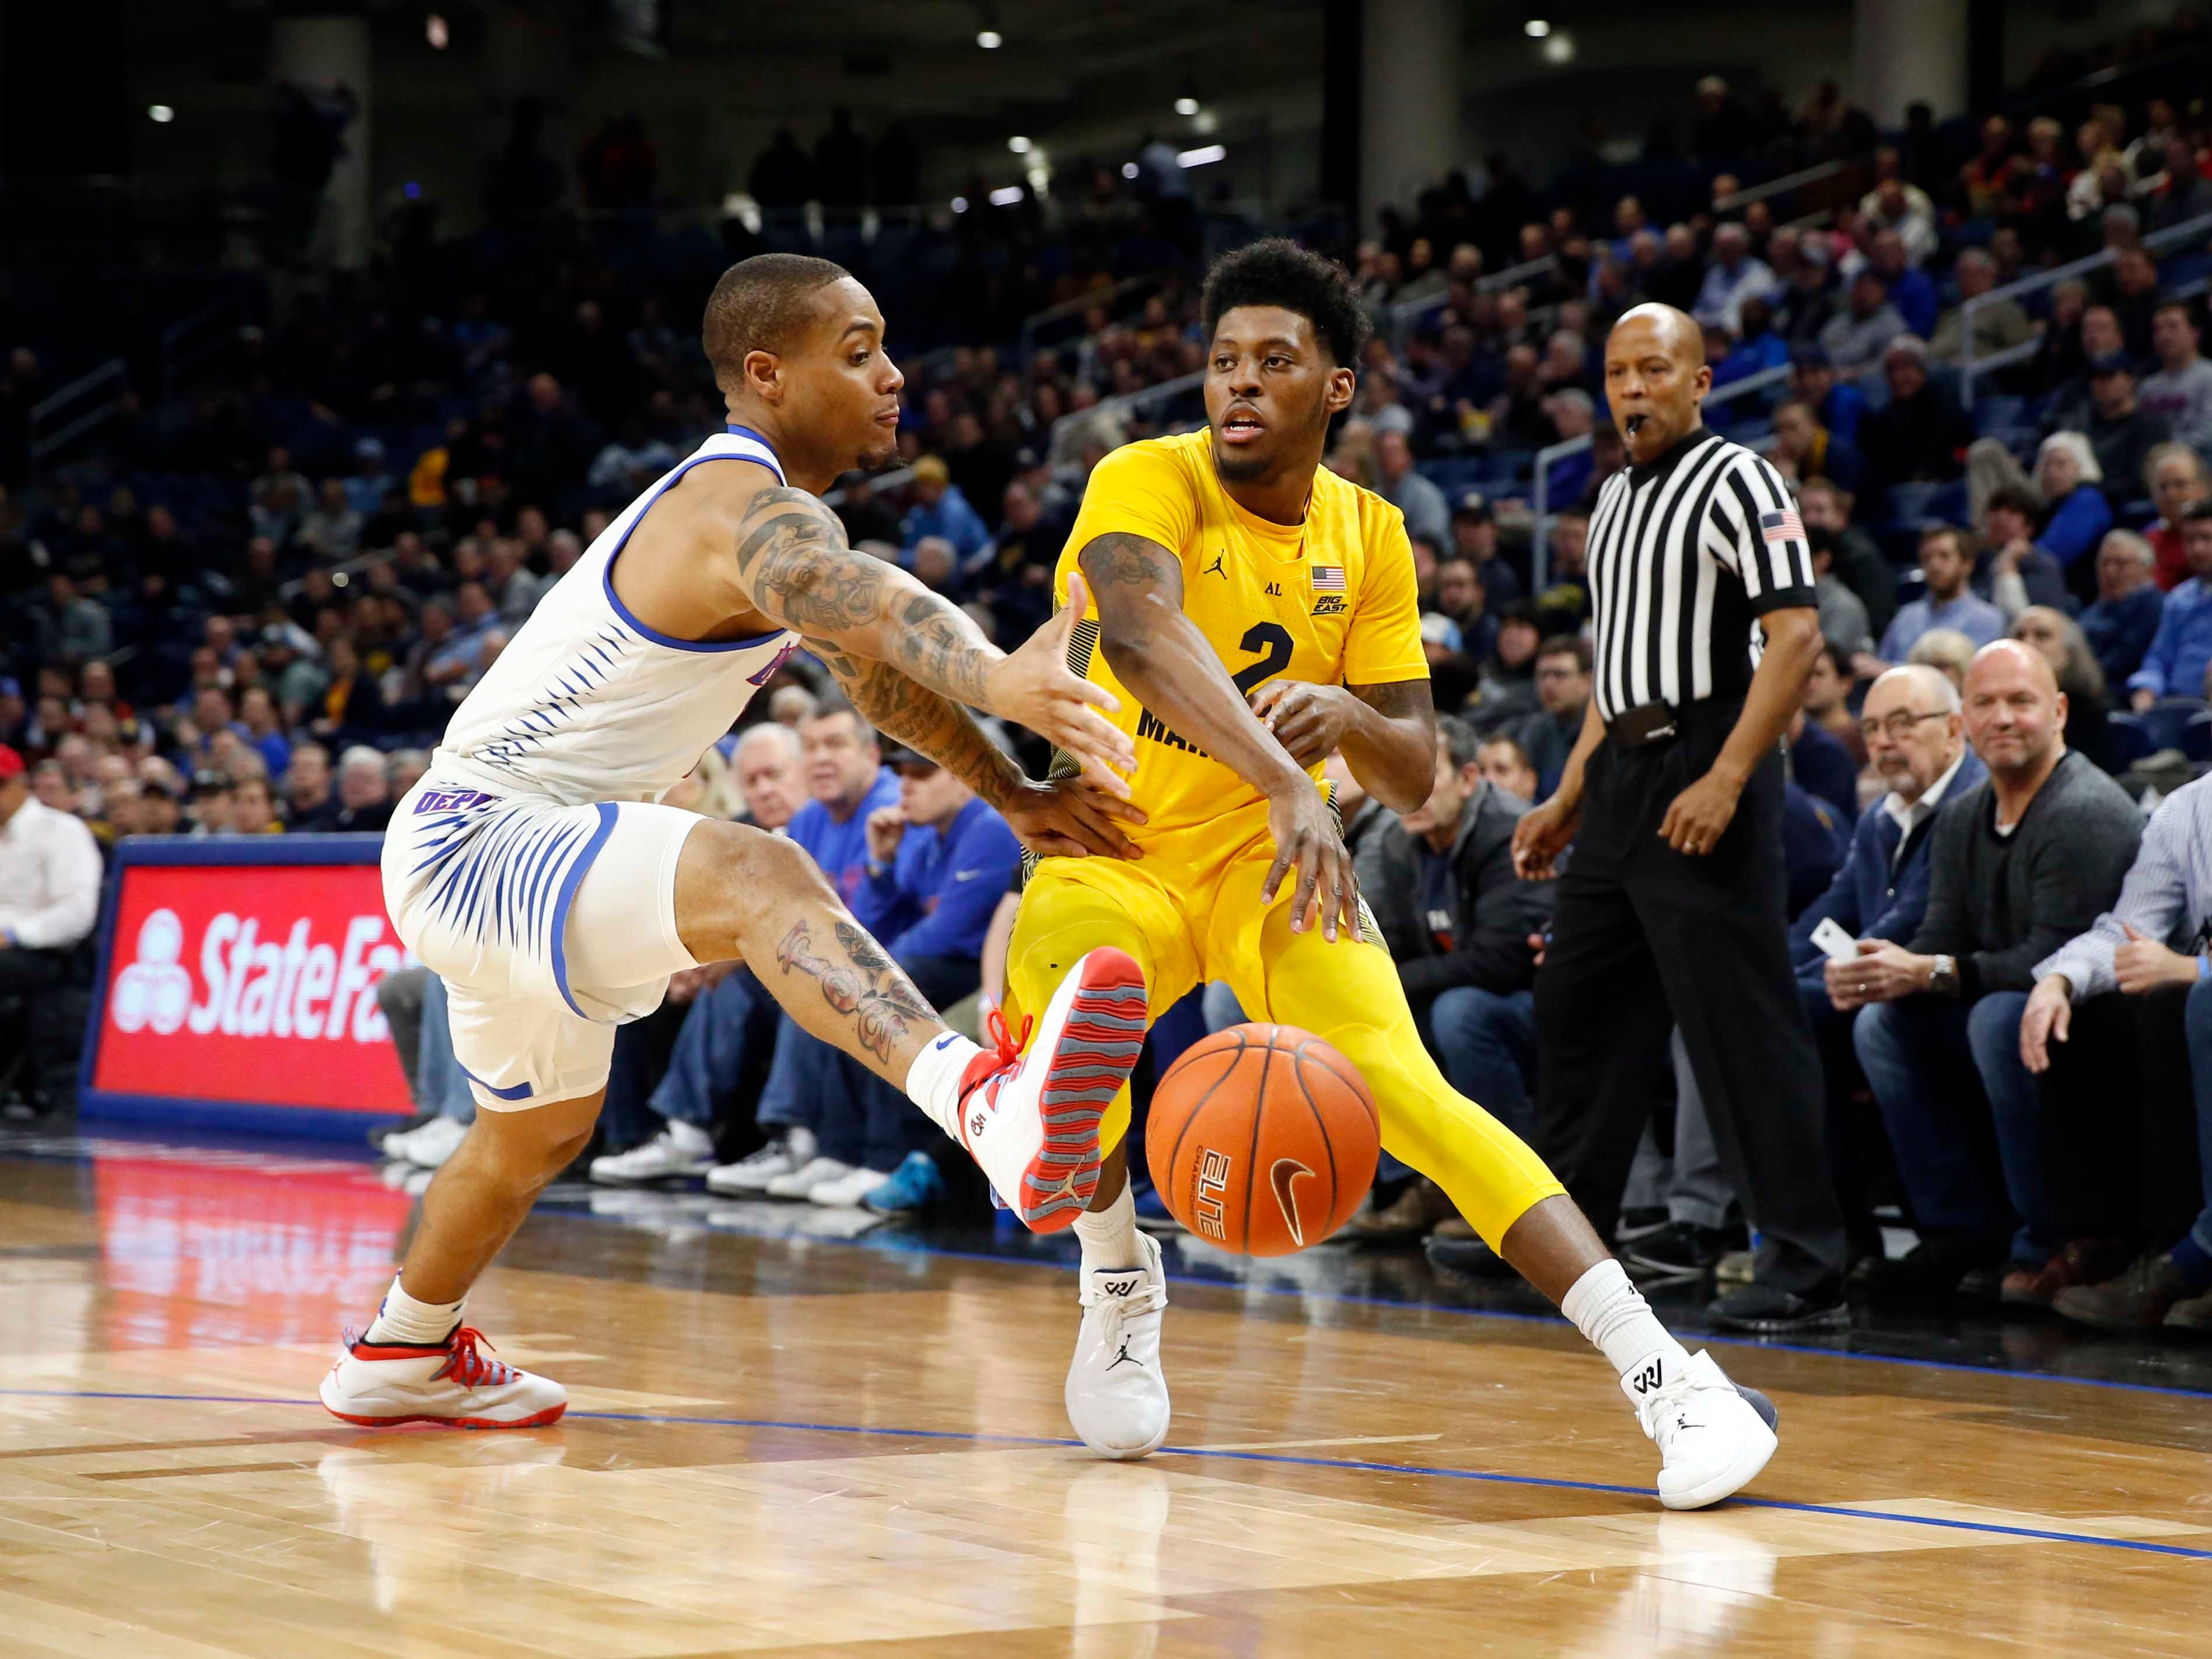 Marquette forward Sacar Anim finds room to pass around DePaul guard Devin Gage.